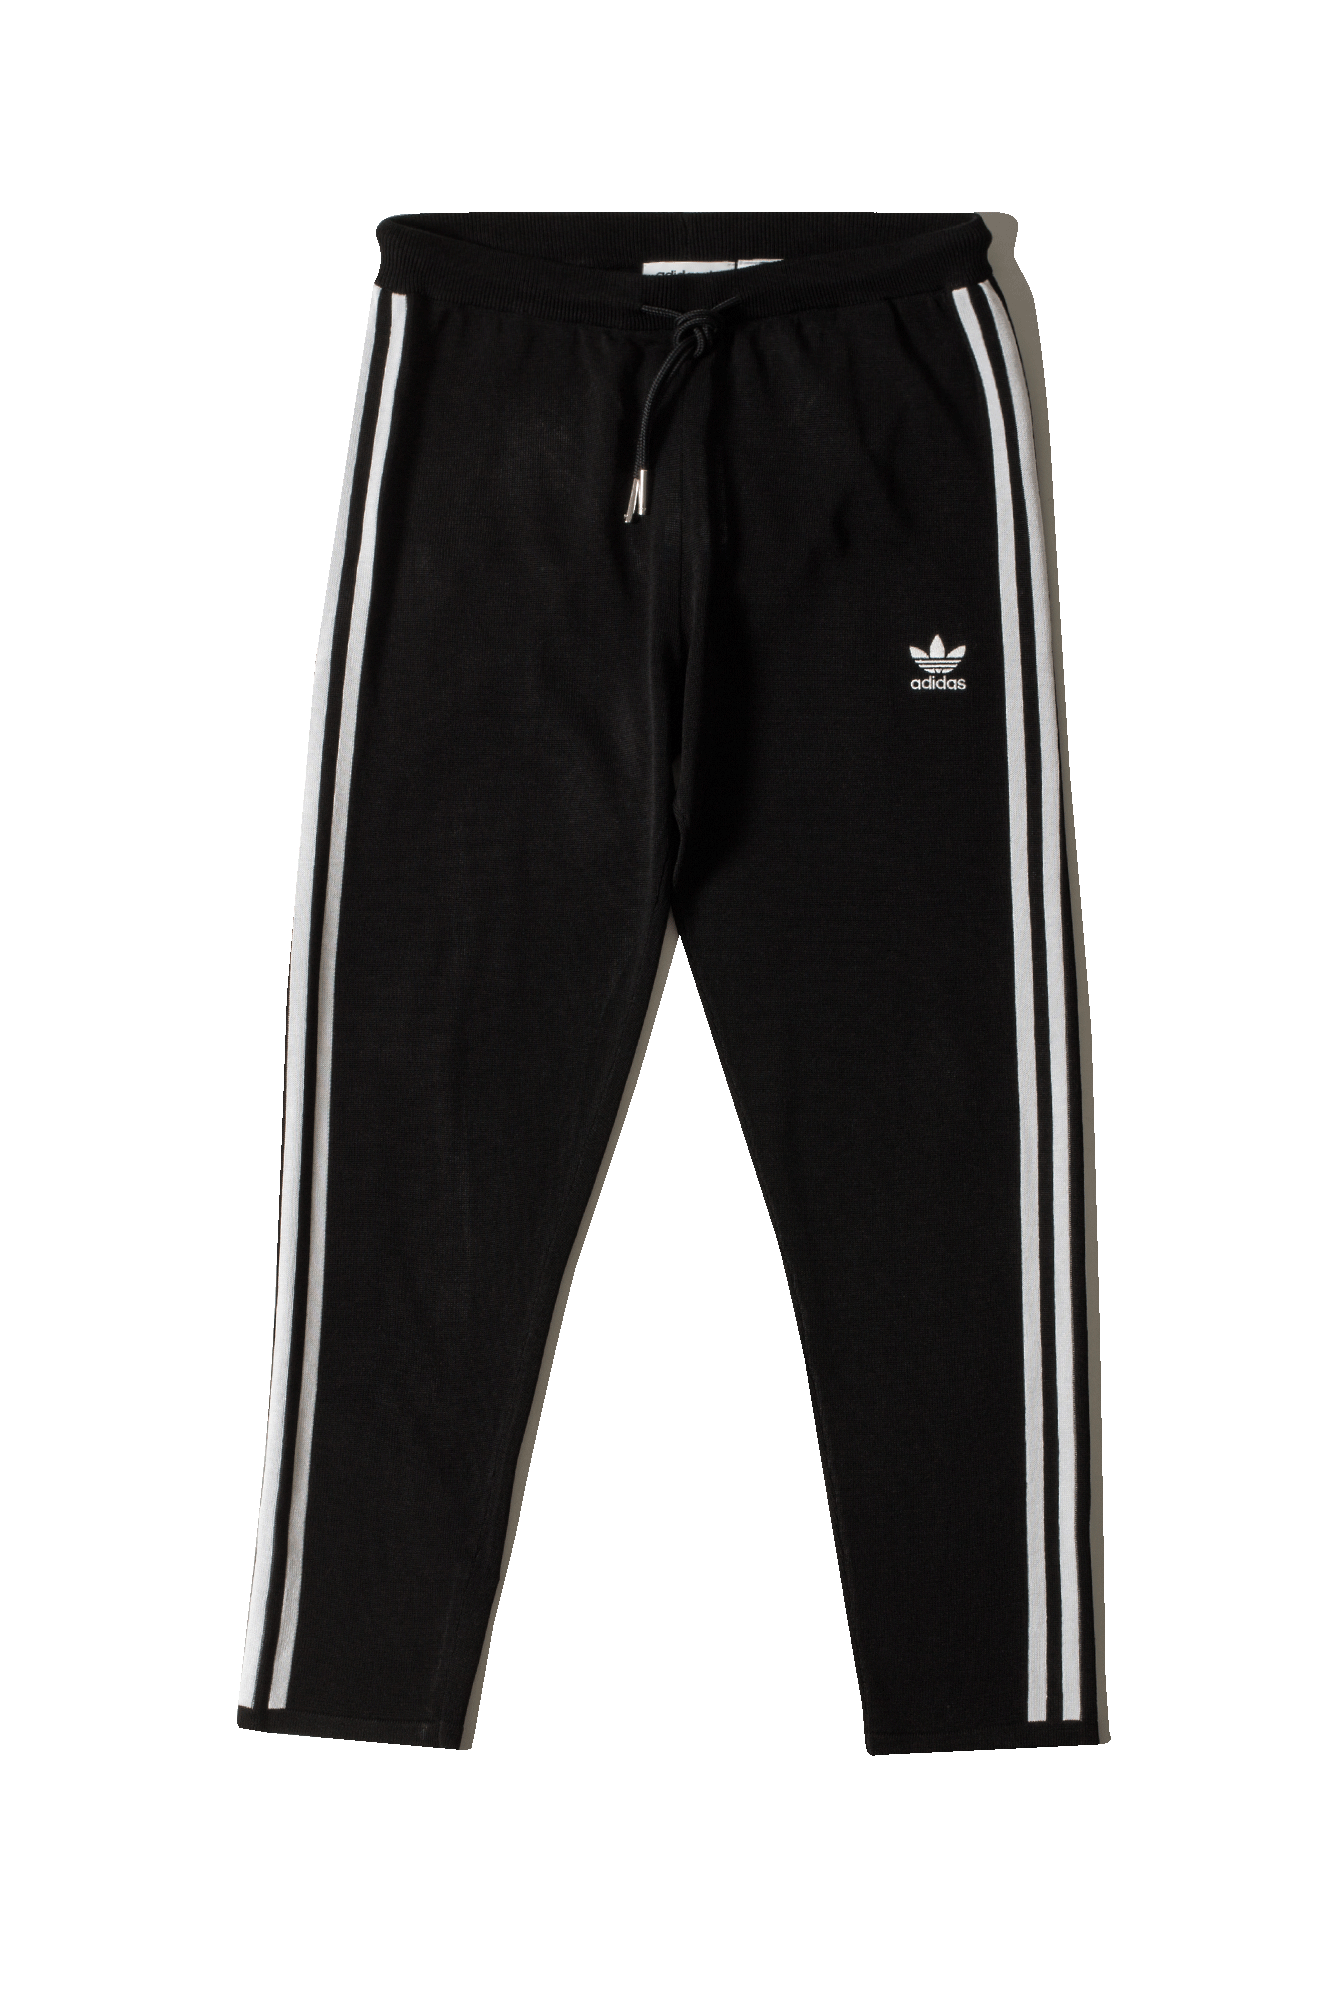 Adidas stripes png. Cigarette bk